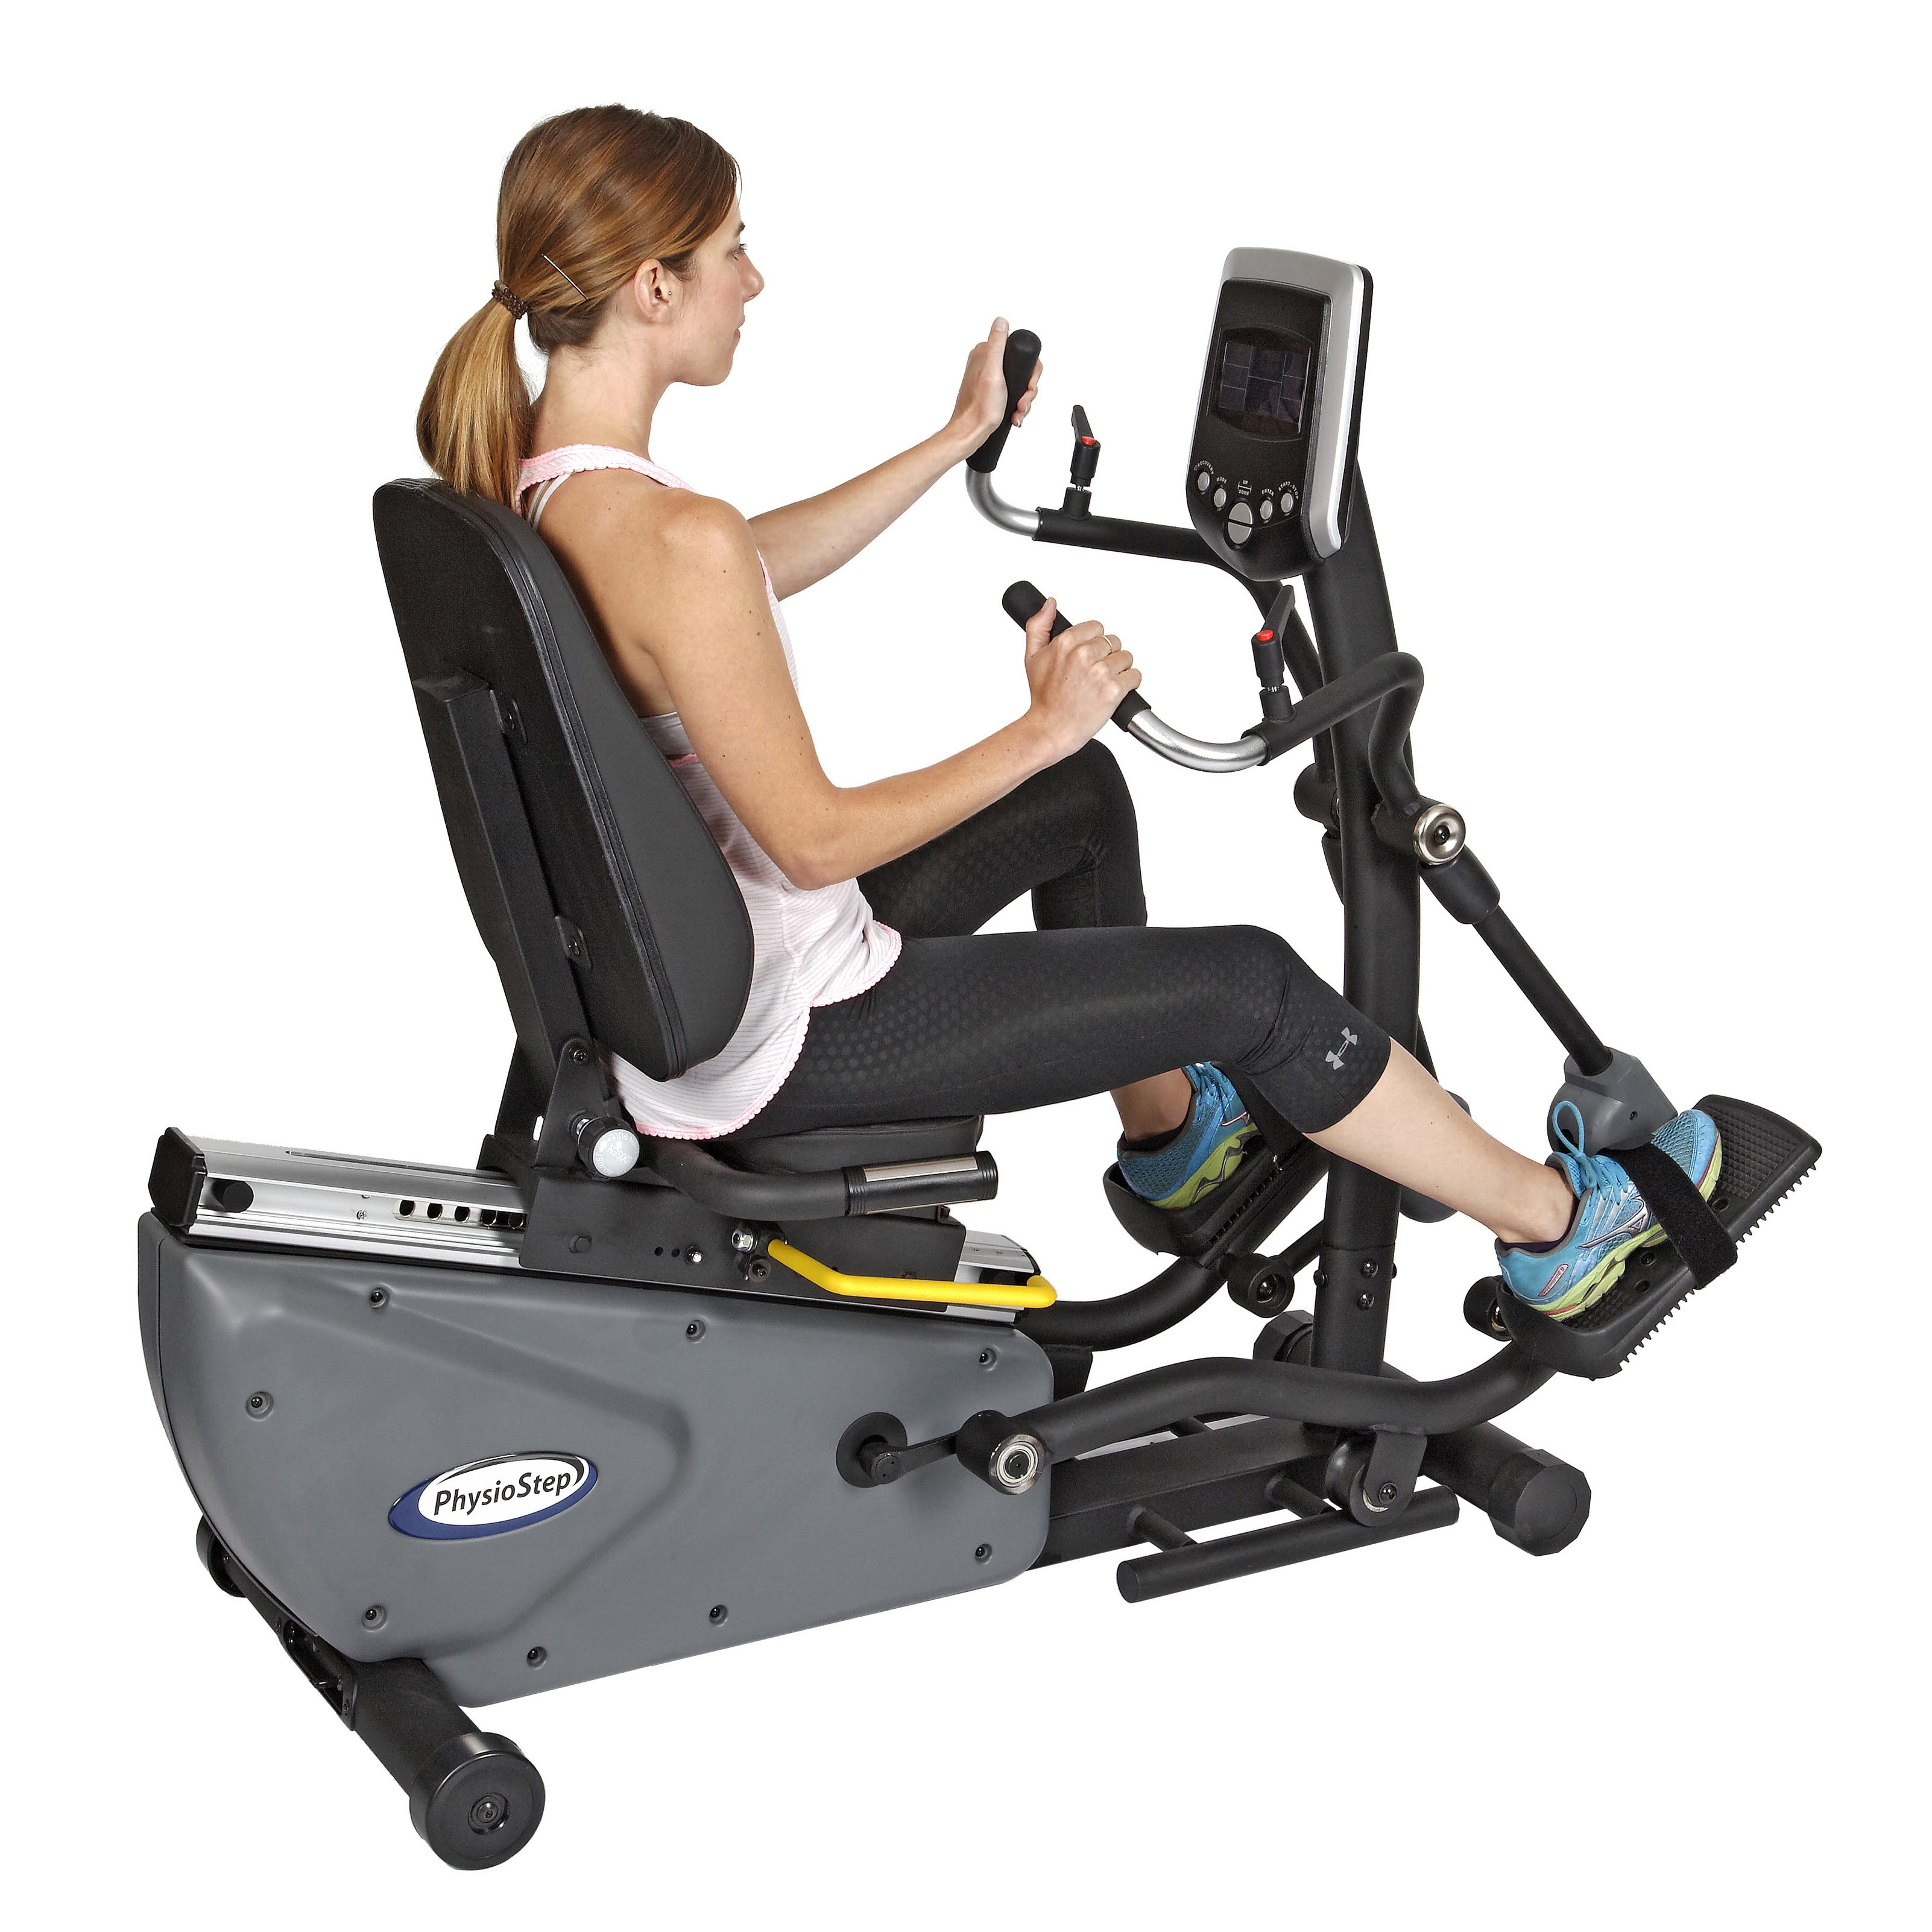 PhysioStep HXT Recumbent Semi-Elliptical Cross Trainer for Home Rehabiliation